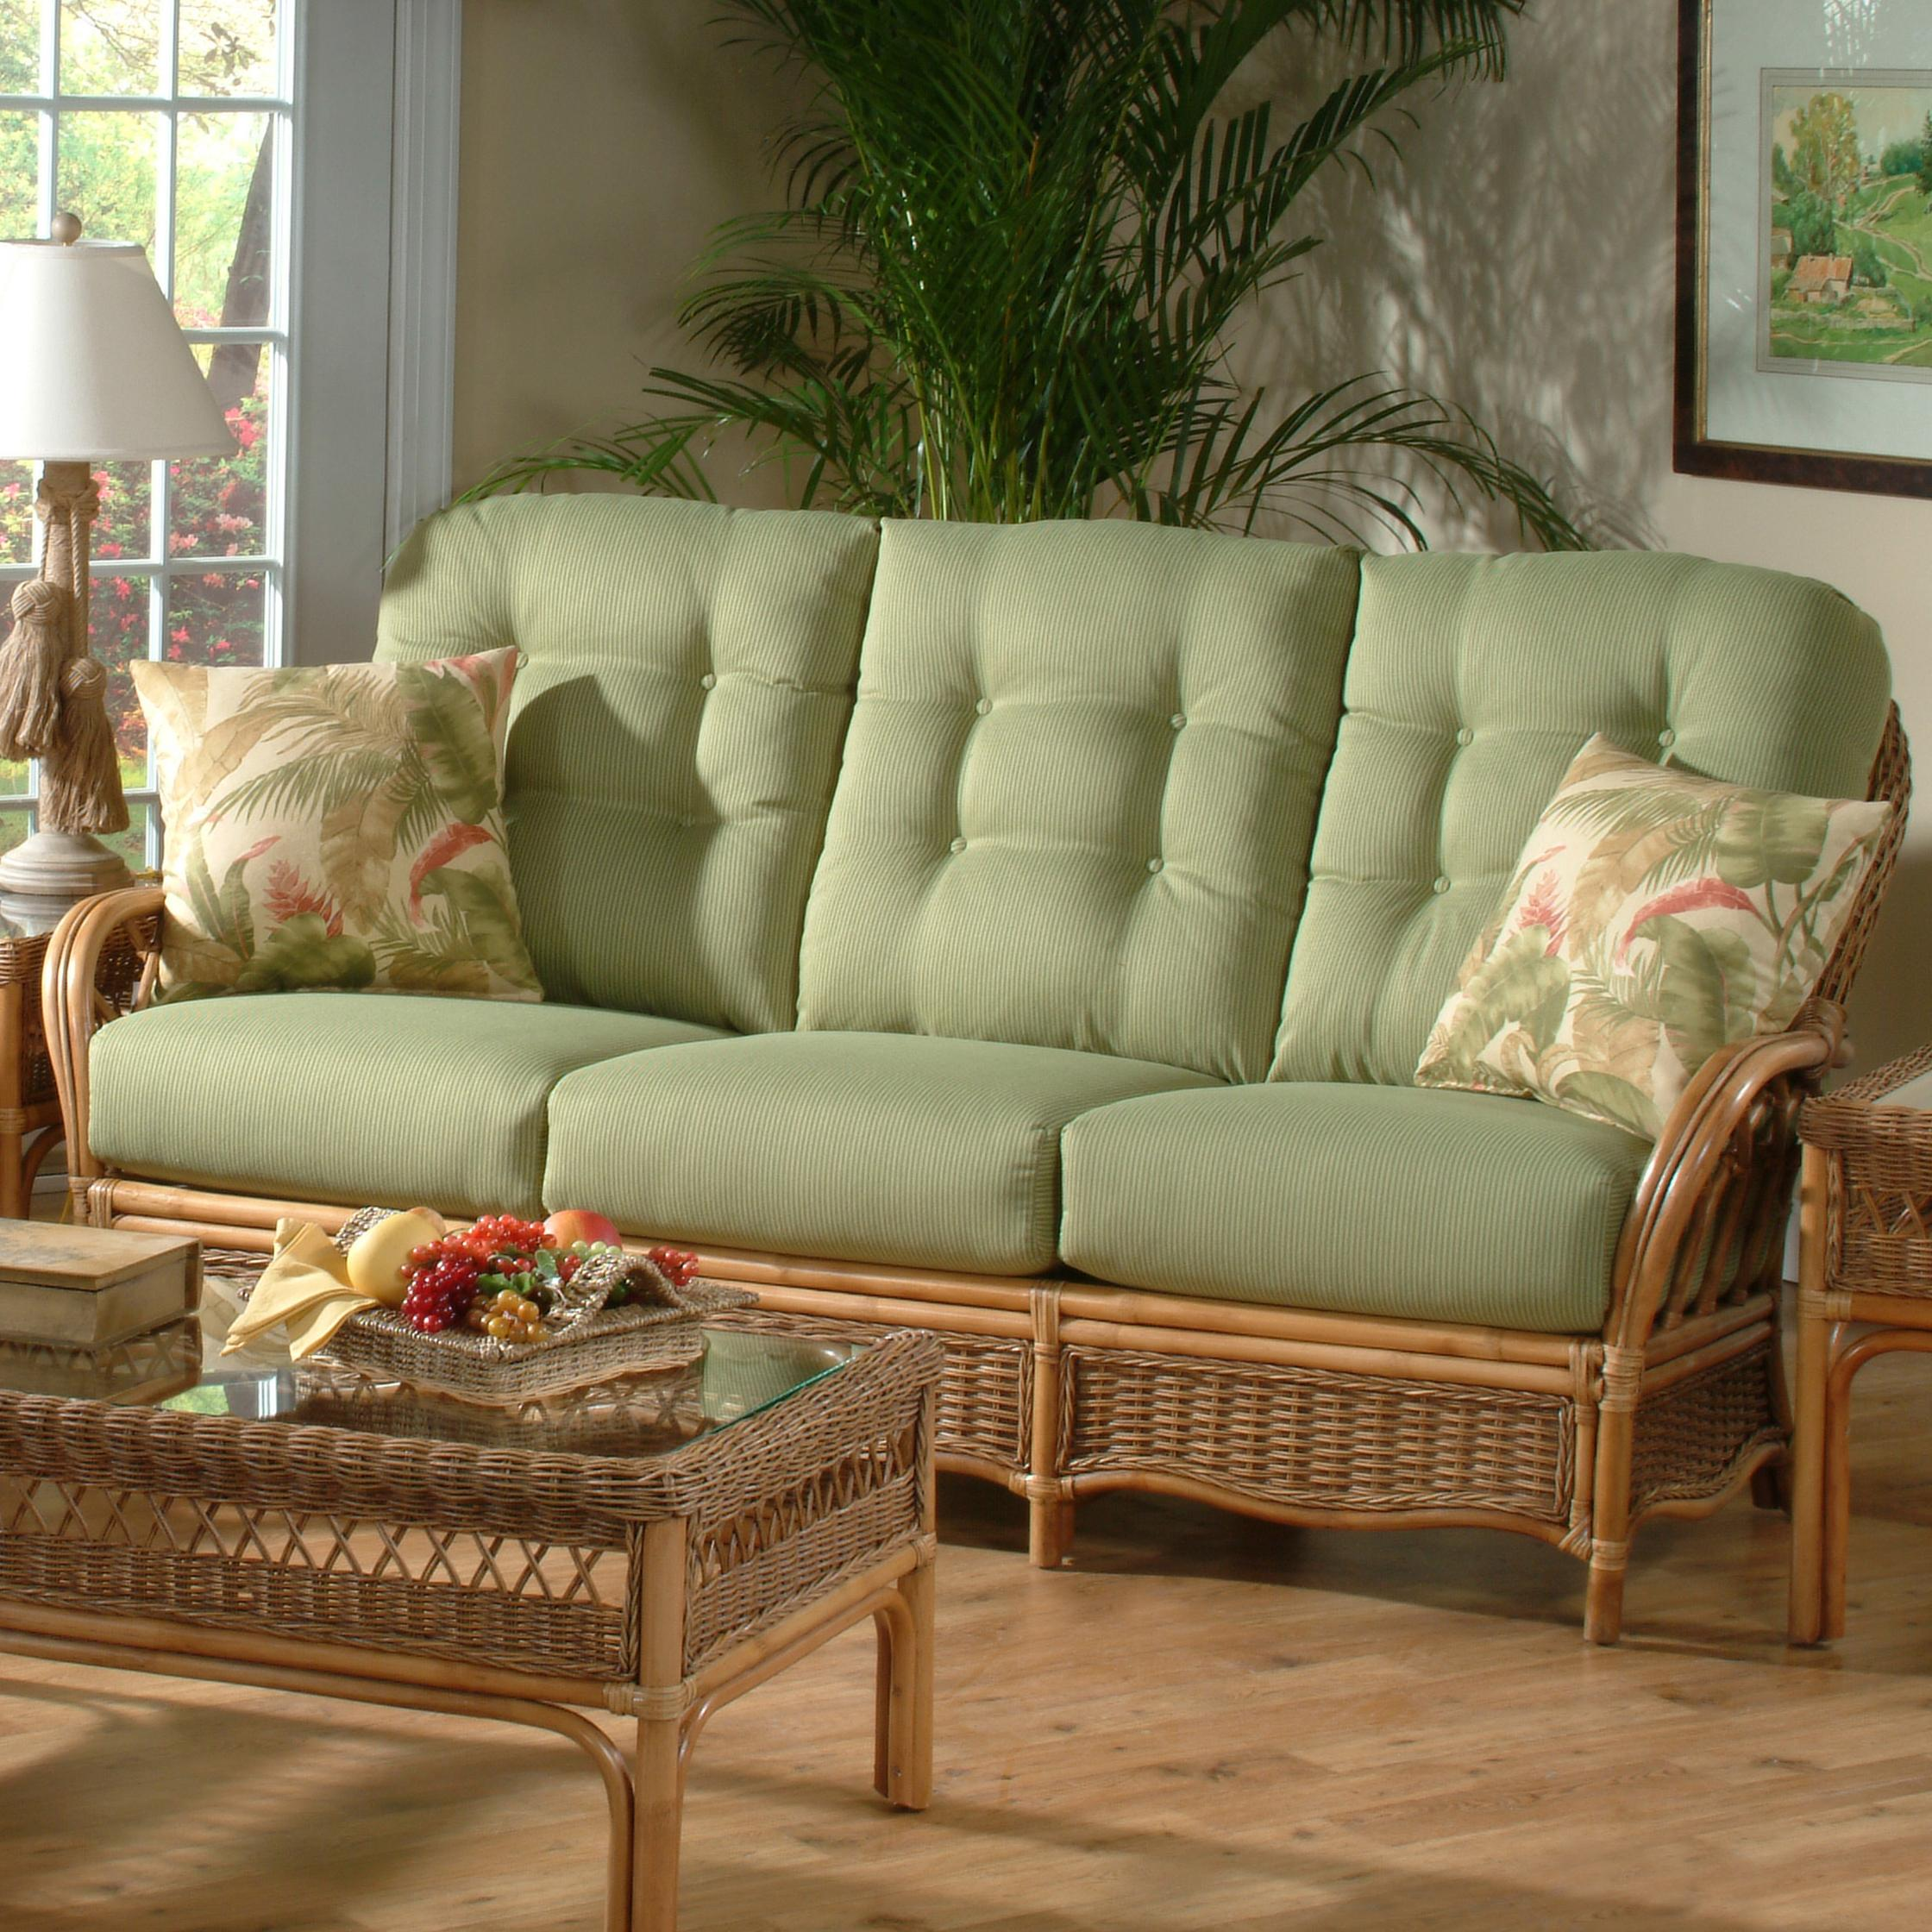 Rattan Sofa Everglade Tropical Rattan Sofa By Braxton Culler At Johnny Janosik